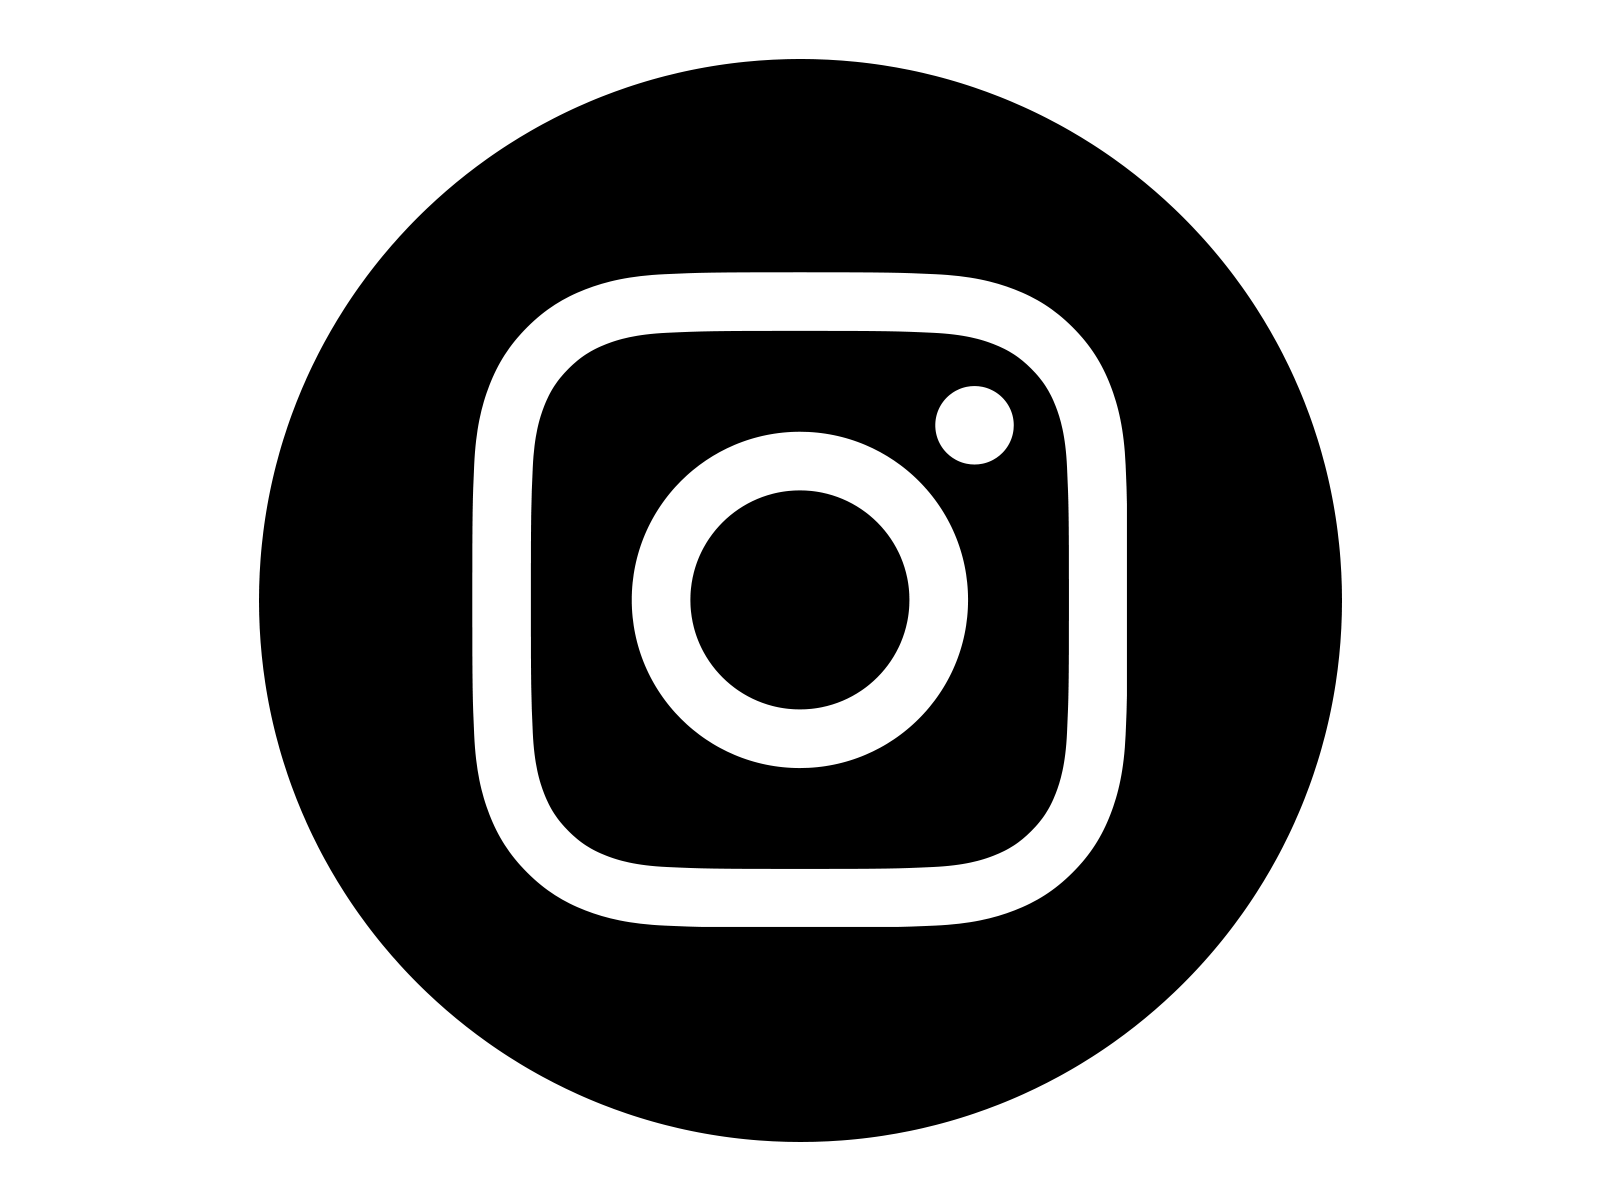 logo instagram black vector